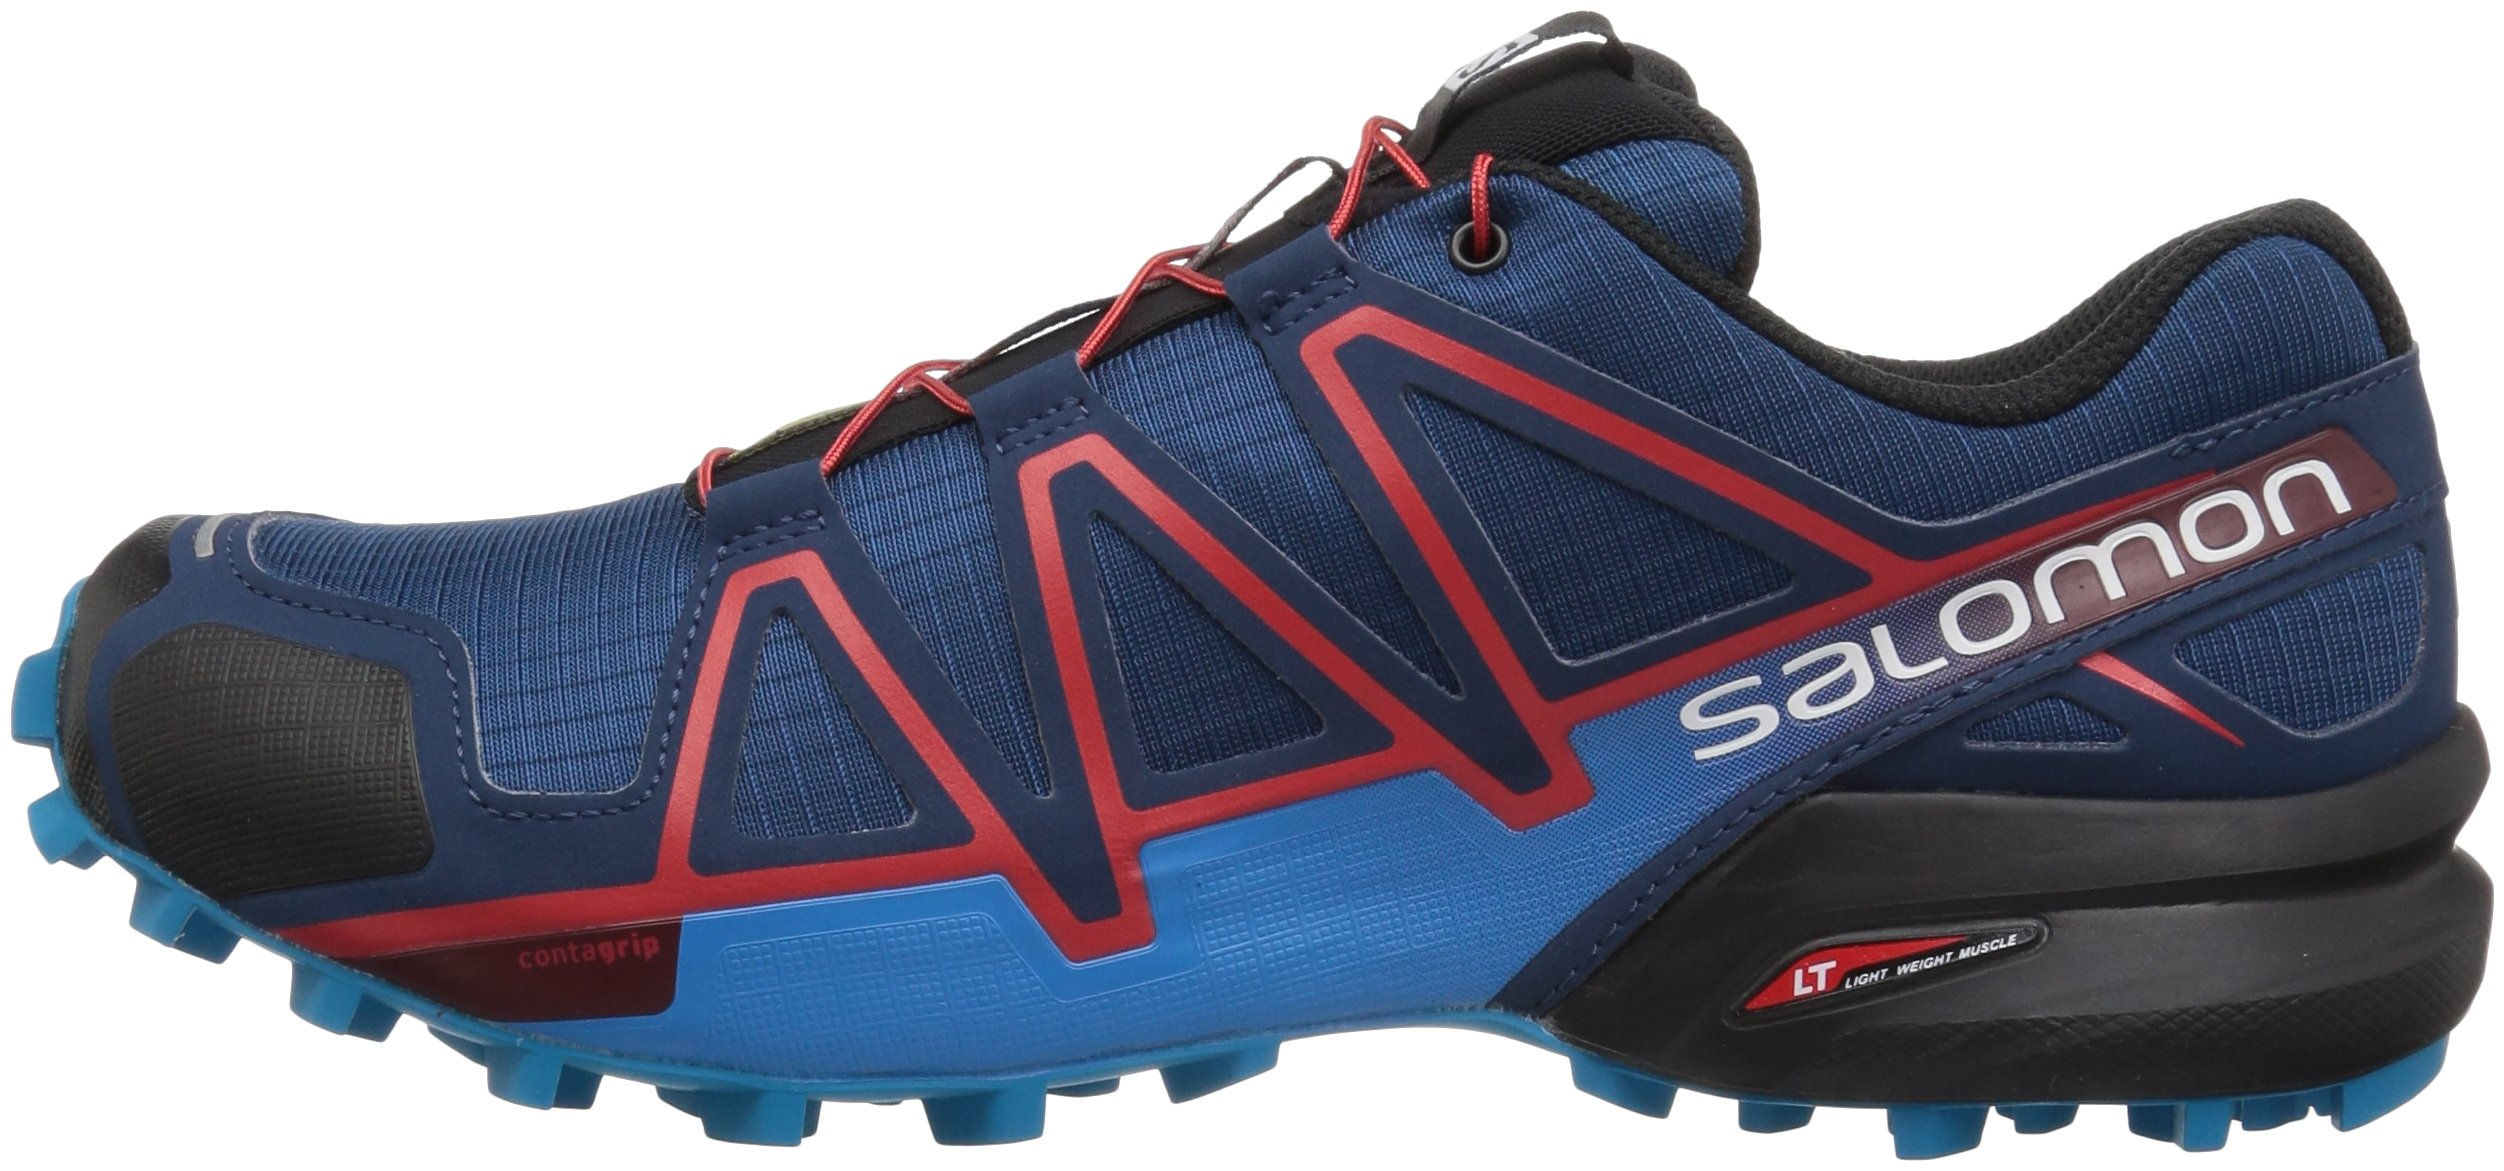 newest baf26 e5853 Salomon Men s Speedcross 4 Trail Runner Running Shoe, Poseidon, 10 M US -  L40079700-Q587-10 M US   Trail Running   Clothing, Shoes   Jewelry - tibs